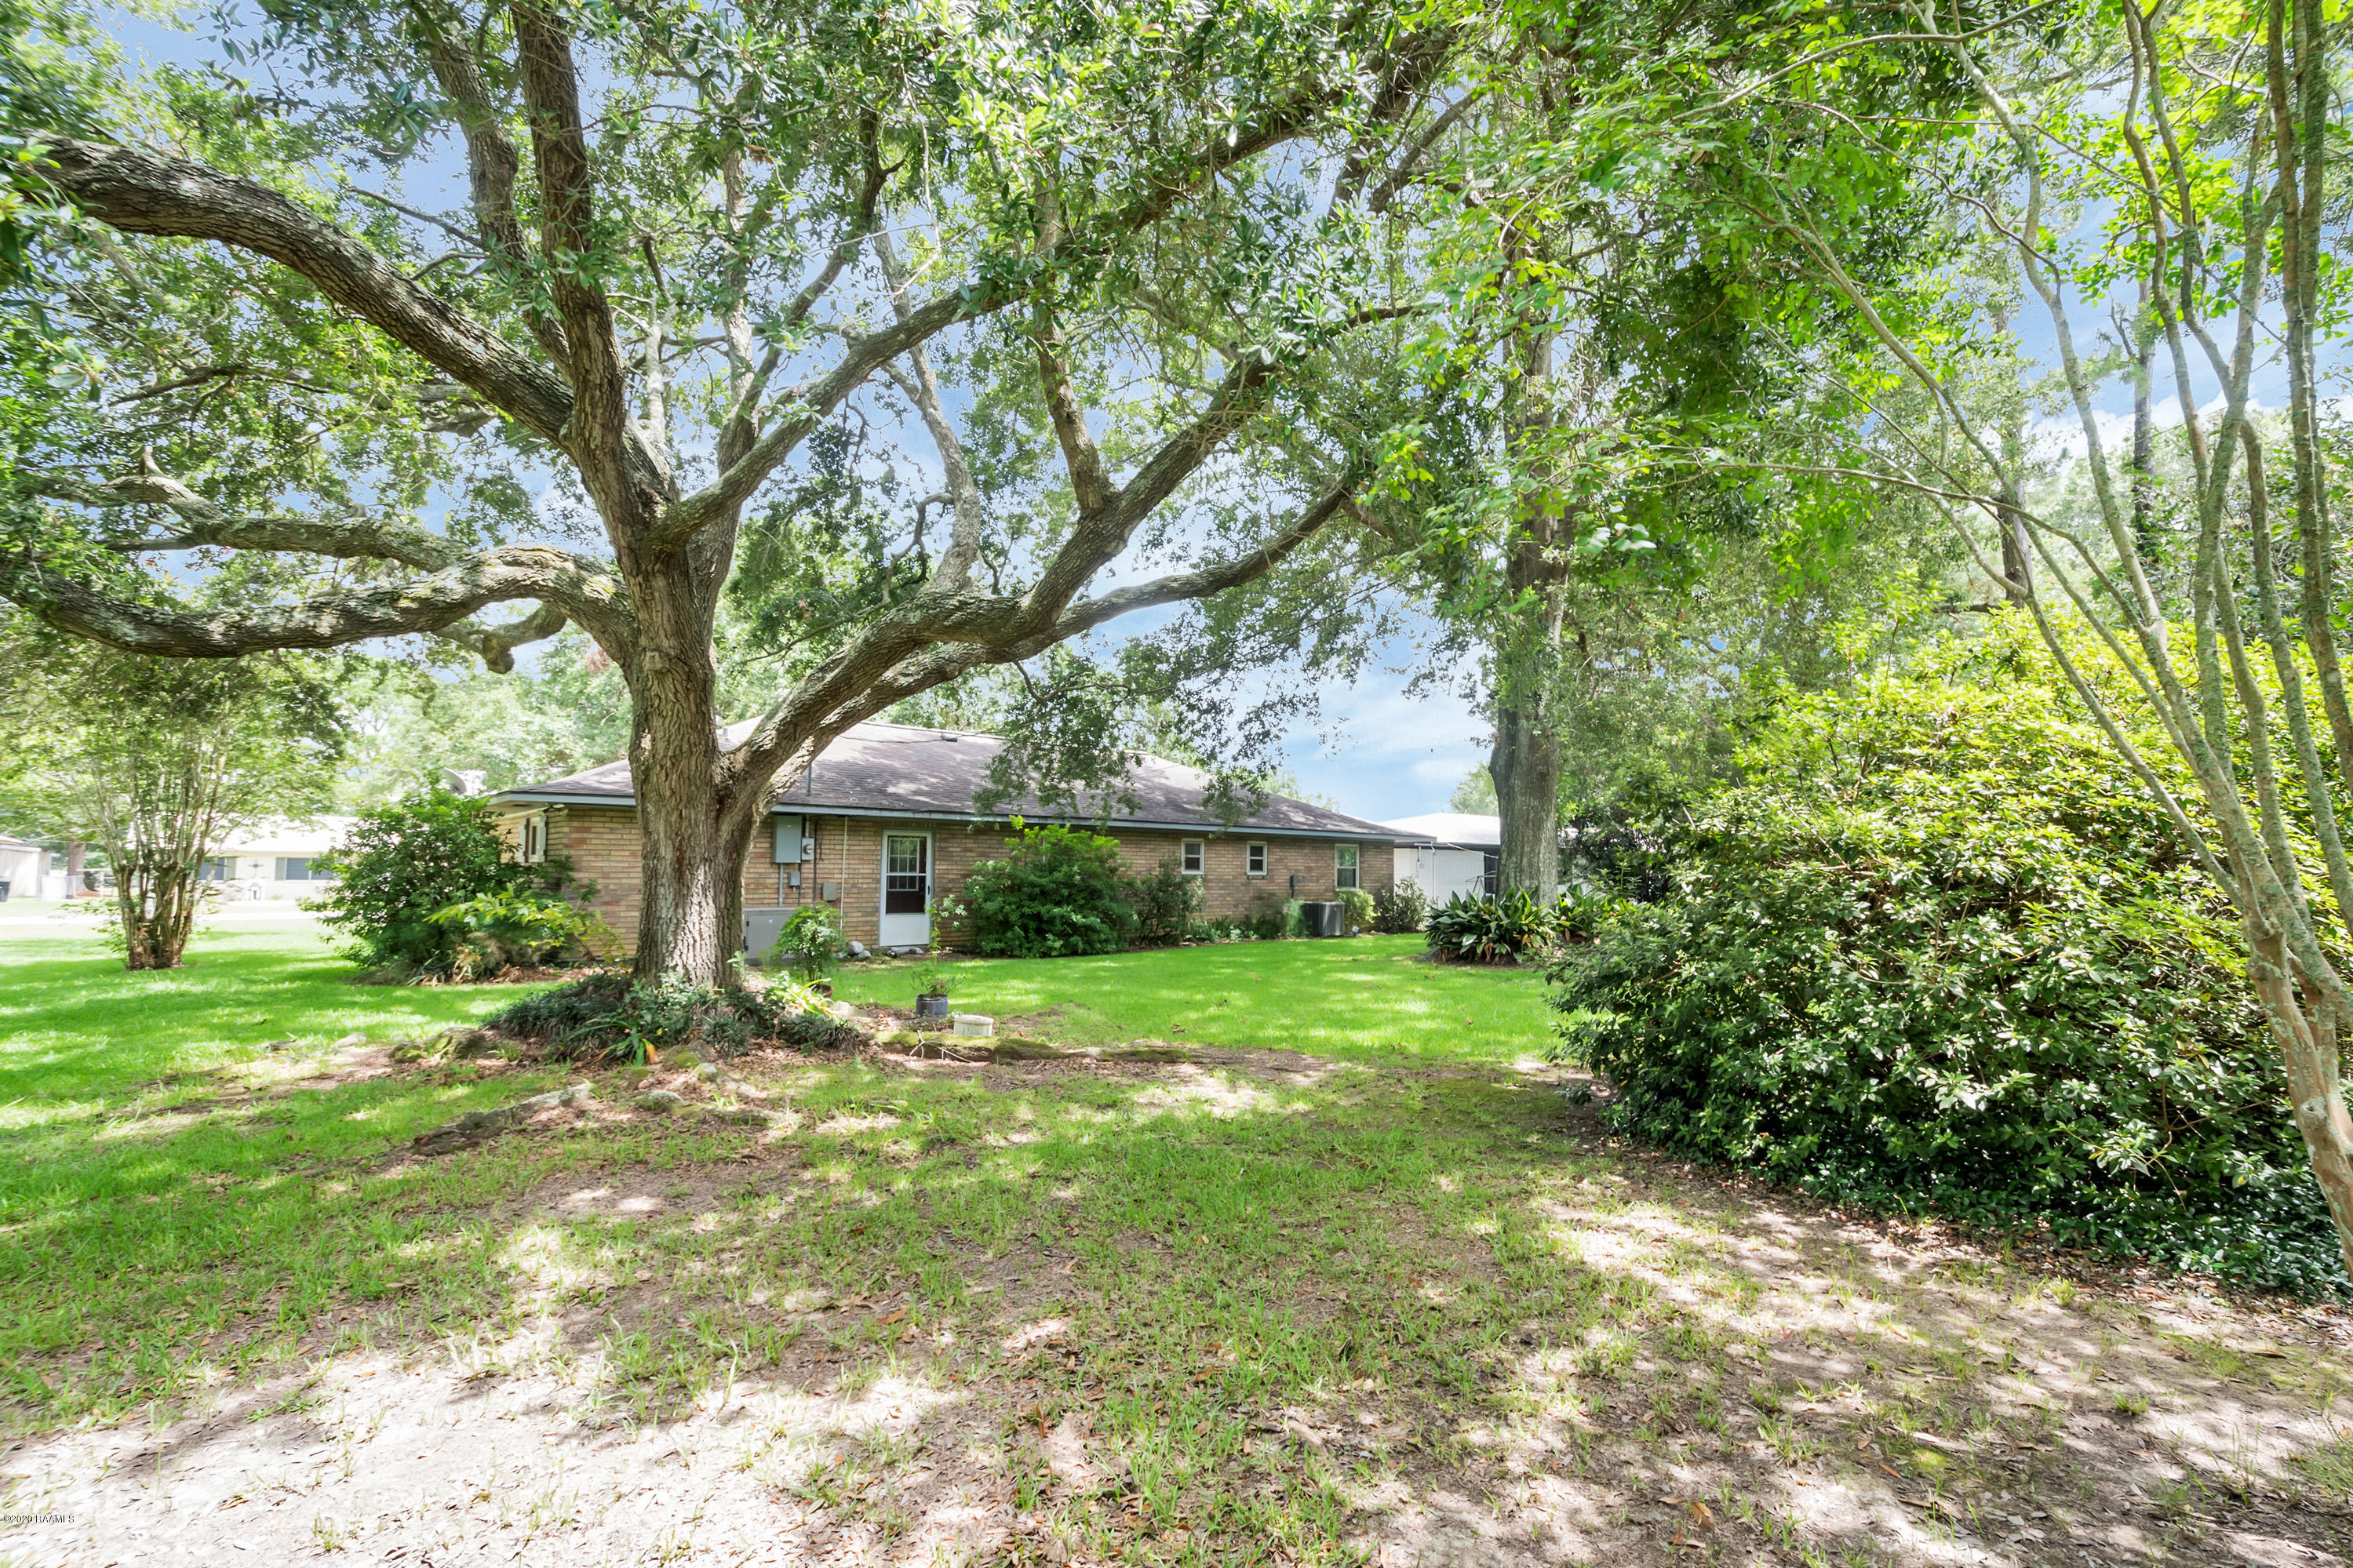 132 Richlieu Circle, Kaplan, LA 70548 Photo #15